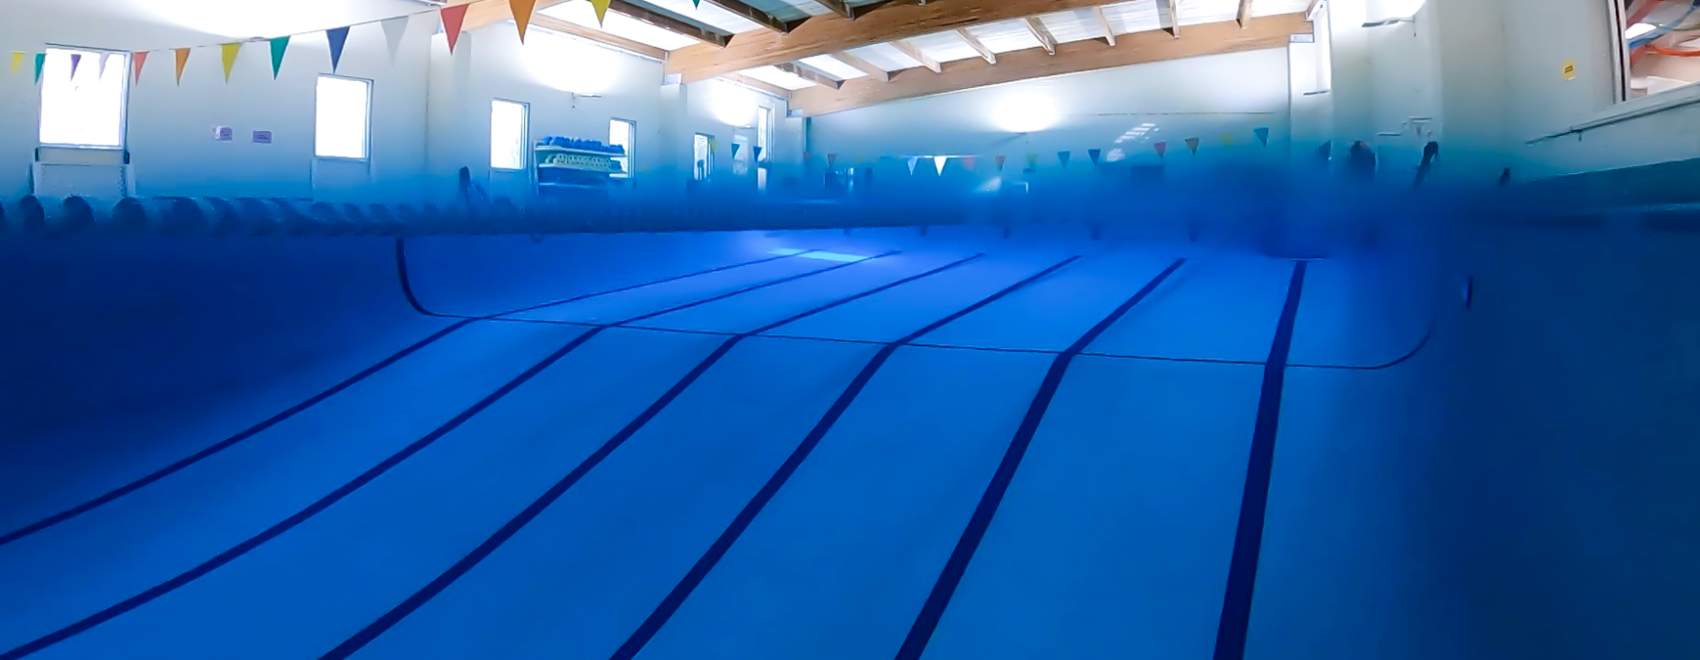 A split image of our Gypsy Divers' training pool, half underwater and half above